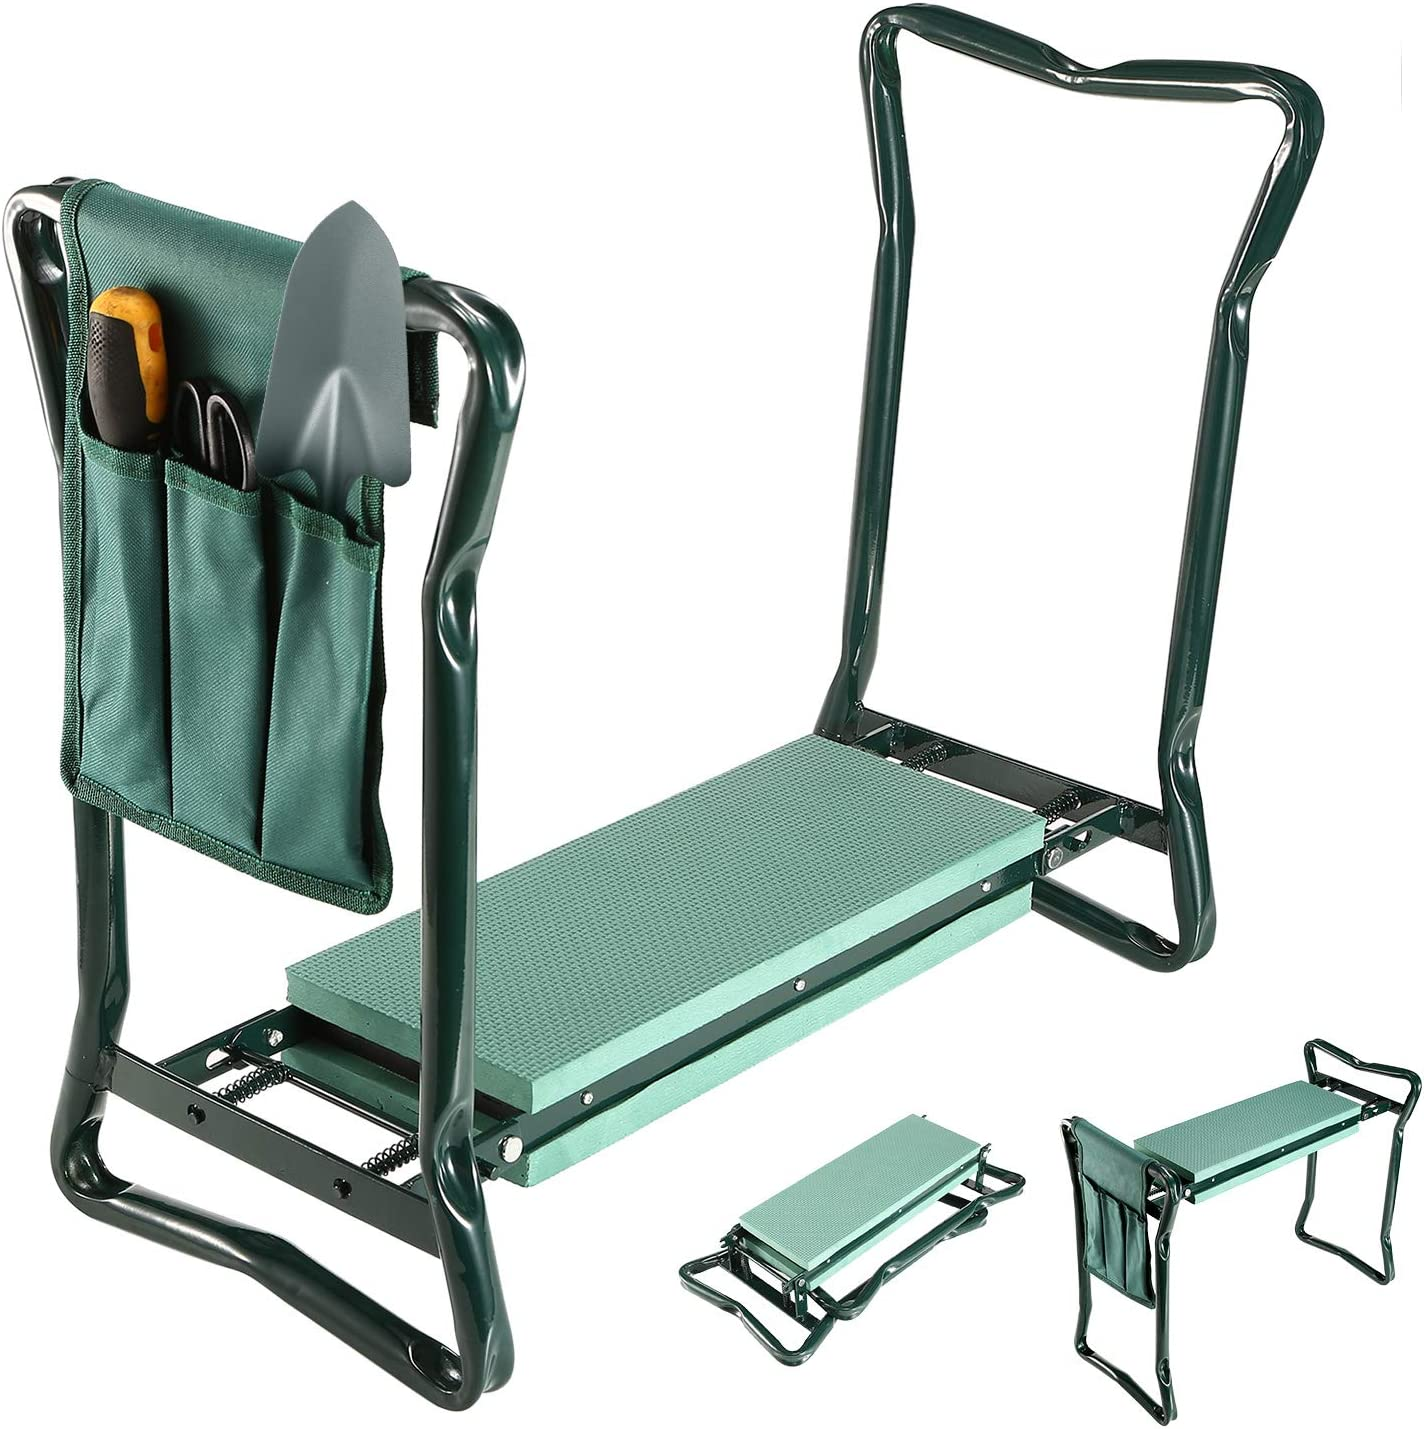 TeqHome Garden Kneeler and Seat Foldable Lightweight Garden Bench with Tool Pouch and Soft Kneeling Pad Portable Garden Stool